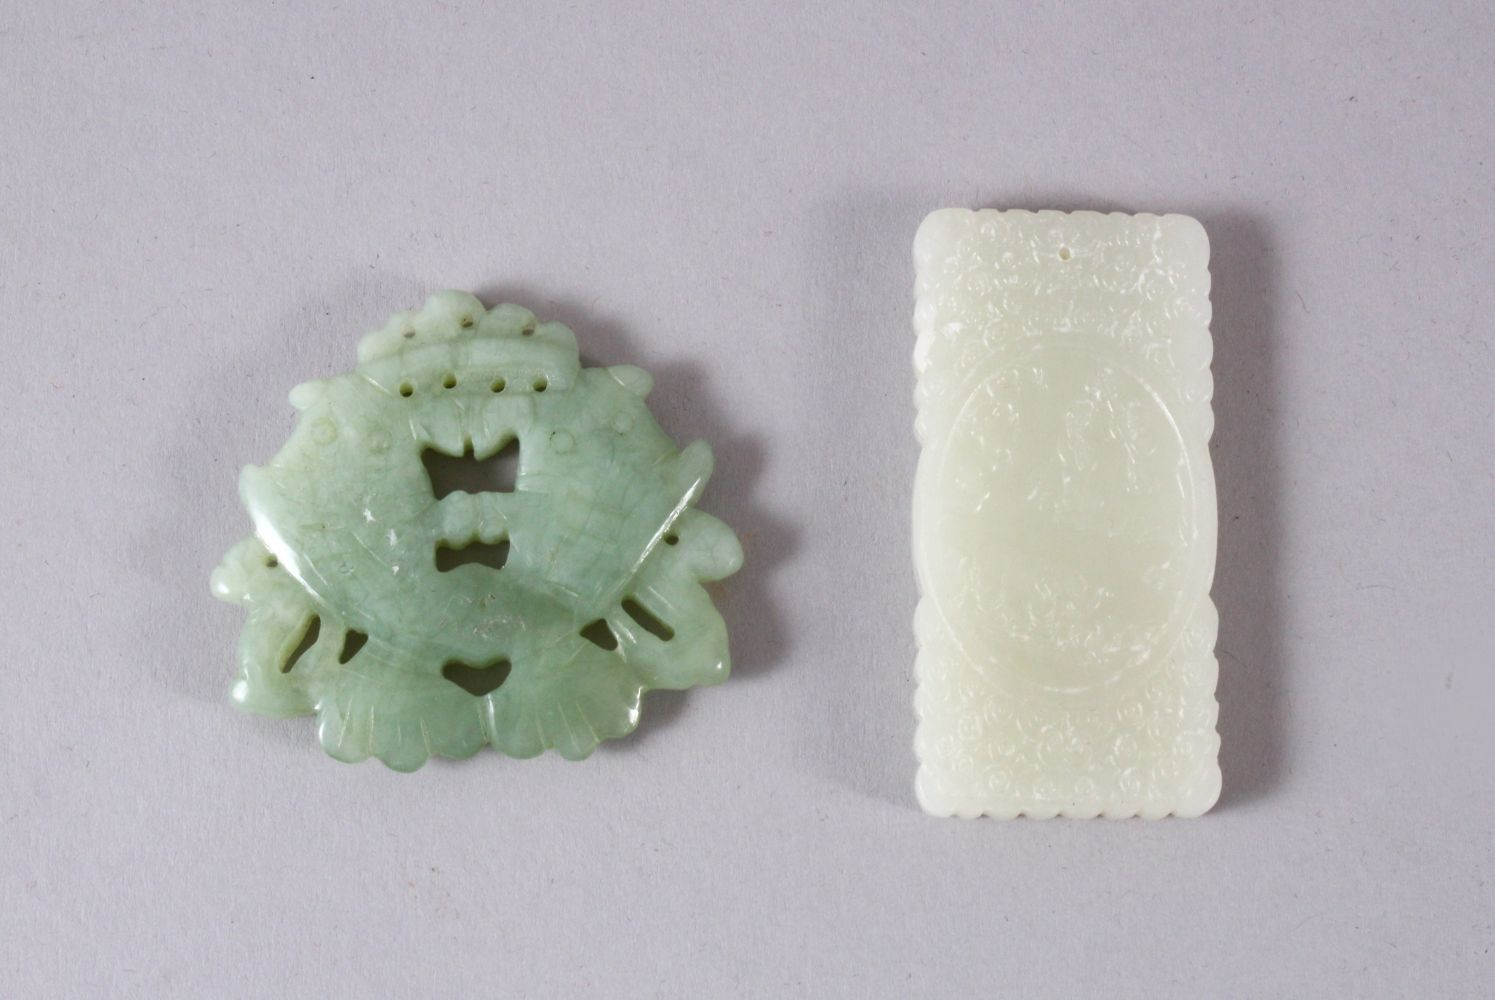 TWO CHINESE CARVED JADE TWIN FISH & IMMORTAL PENDANTS, one carved in the form of twin fish, 5cm,